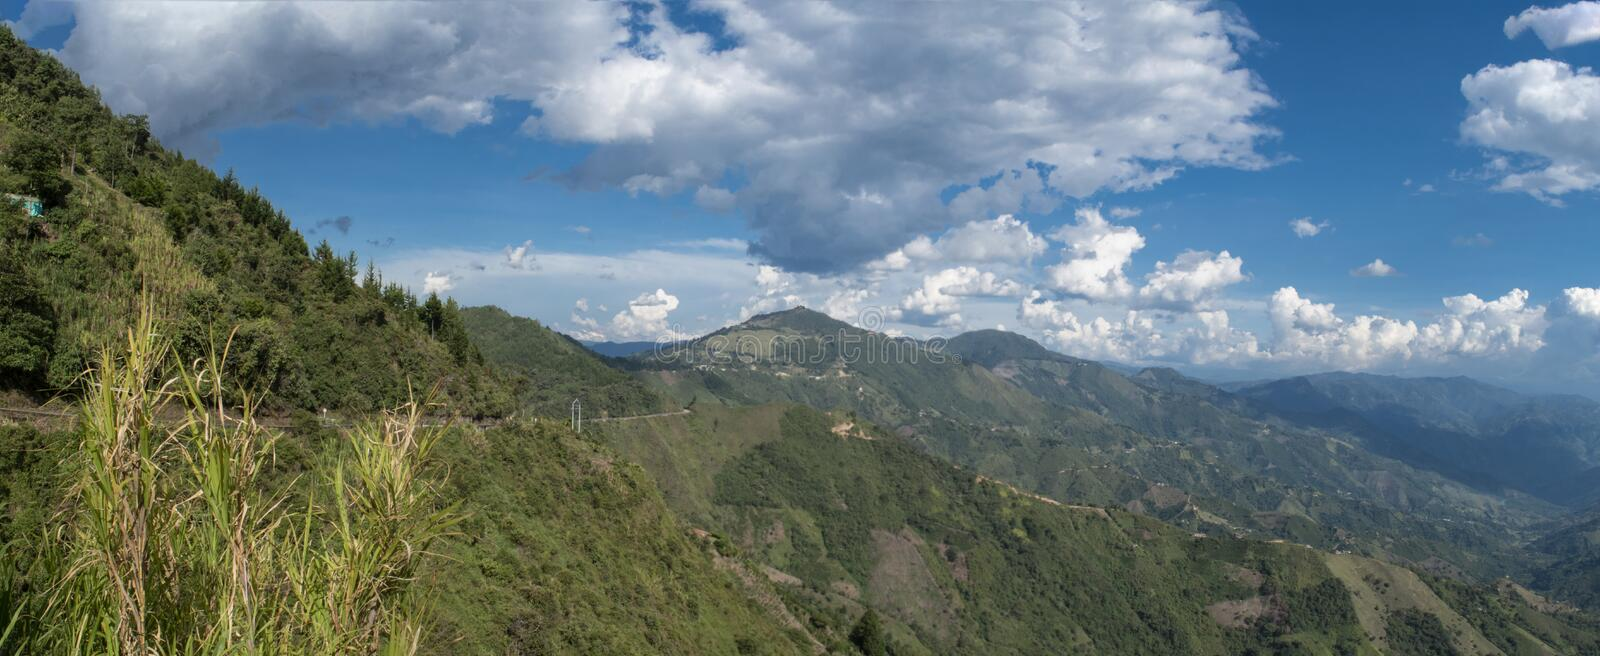 Panoramic photograph of mountains. Colombia antioquia royalty free stock image